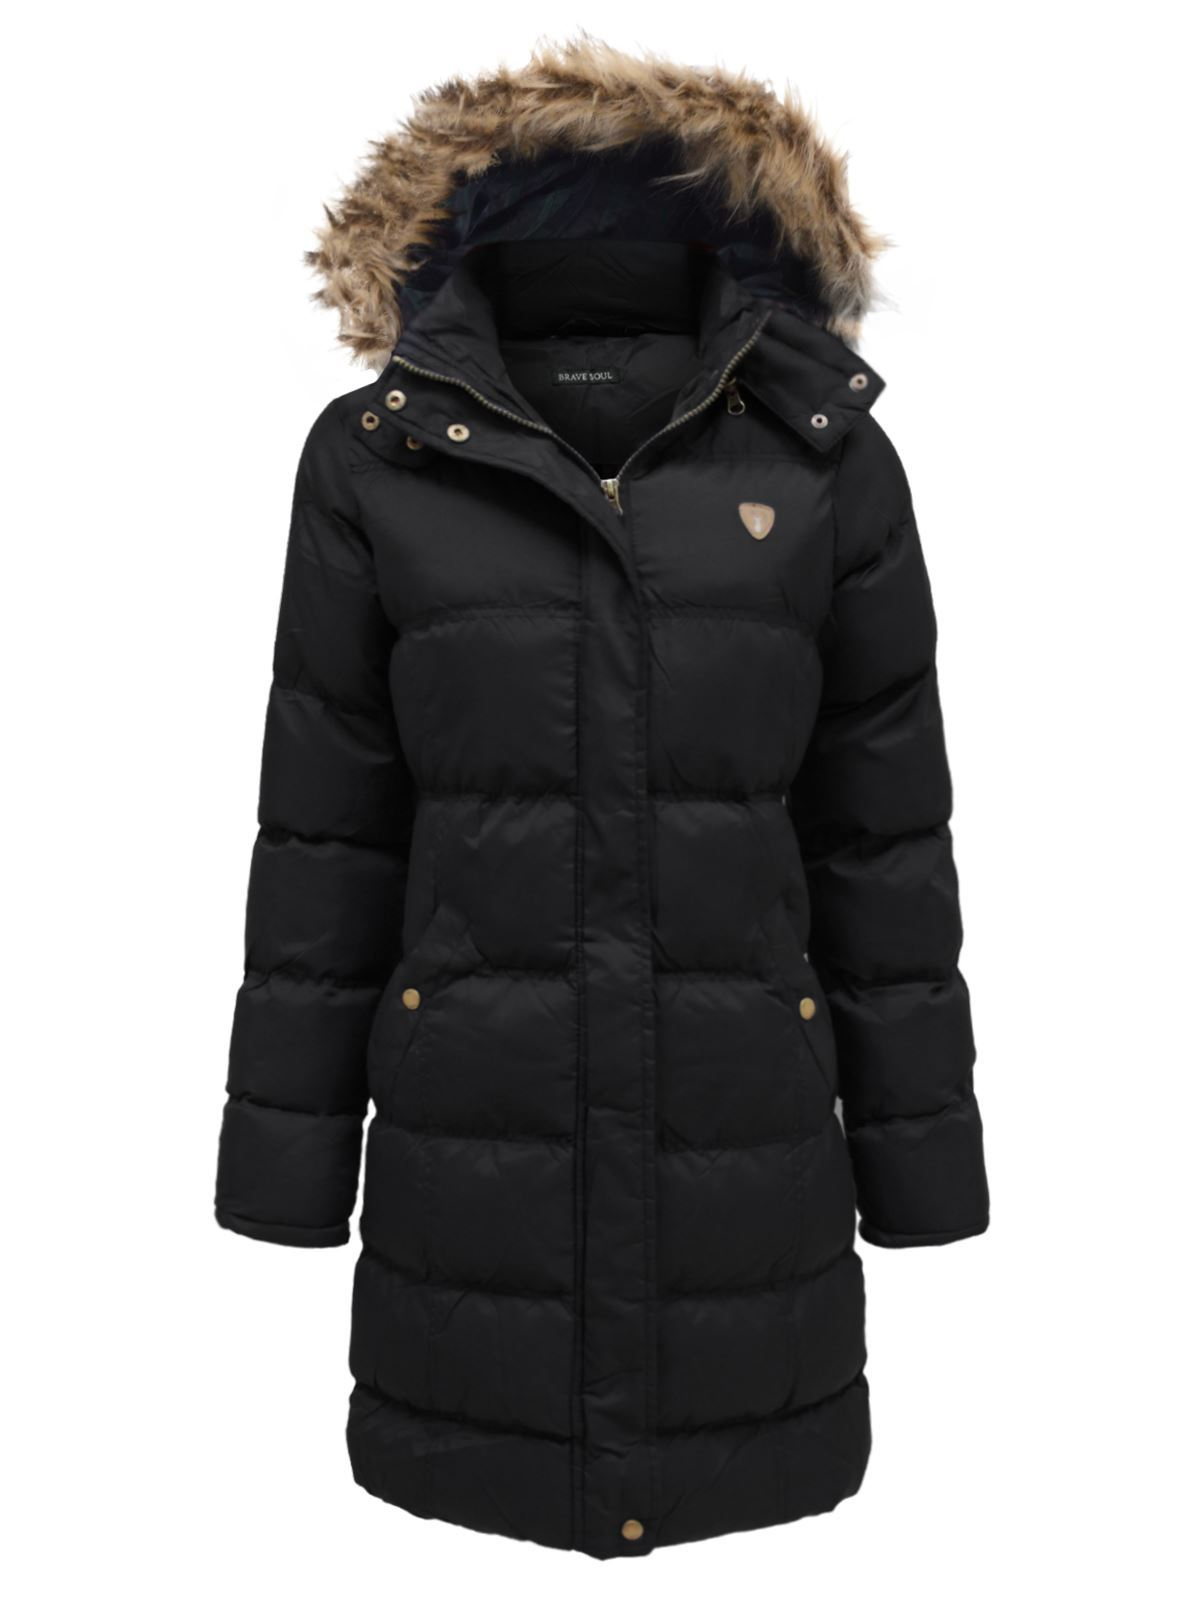 Kids Children Unisex Puffer Padded Parker Quilted Hooded Coat Jacket Age 7-13